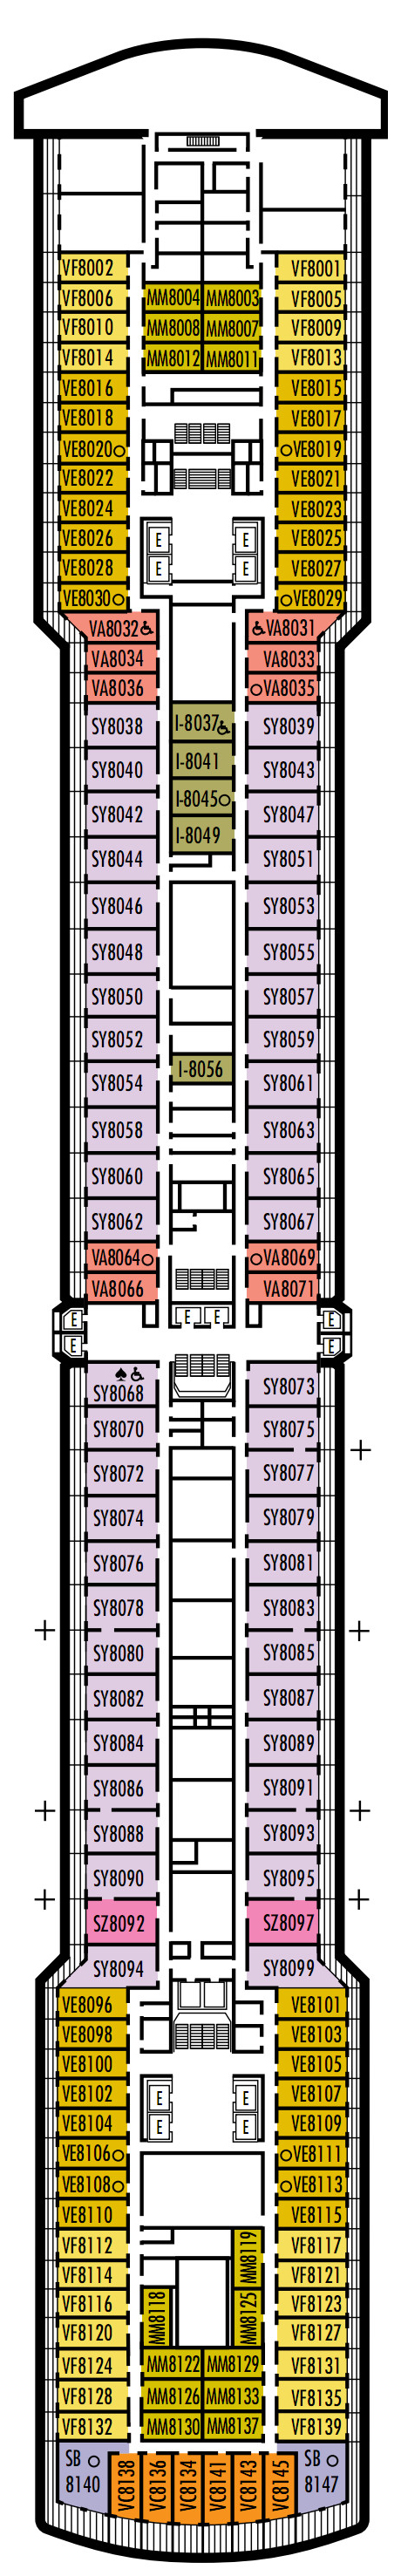 Westerdam Deck 8 - Navigation Deck layout